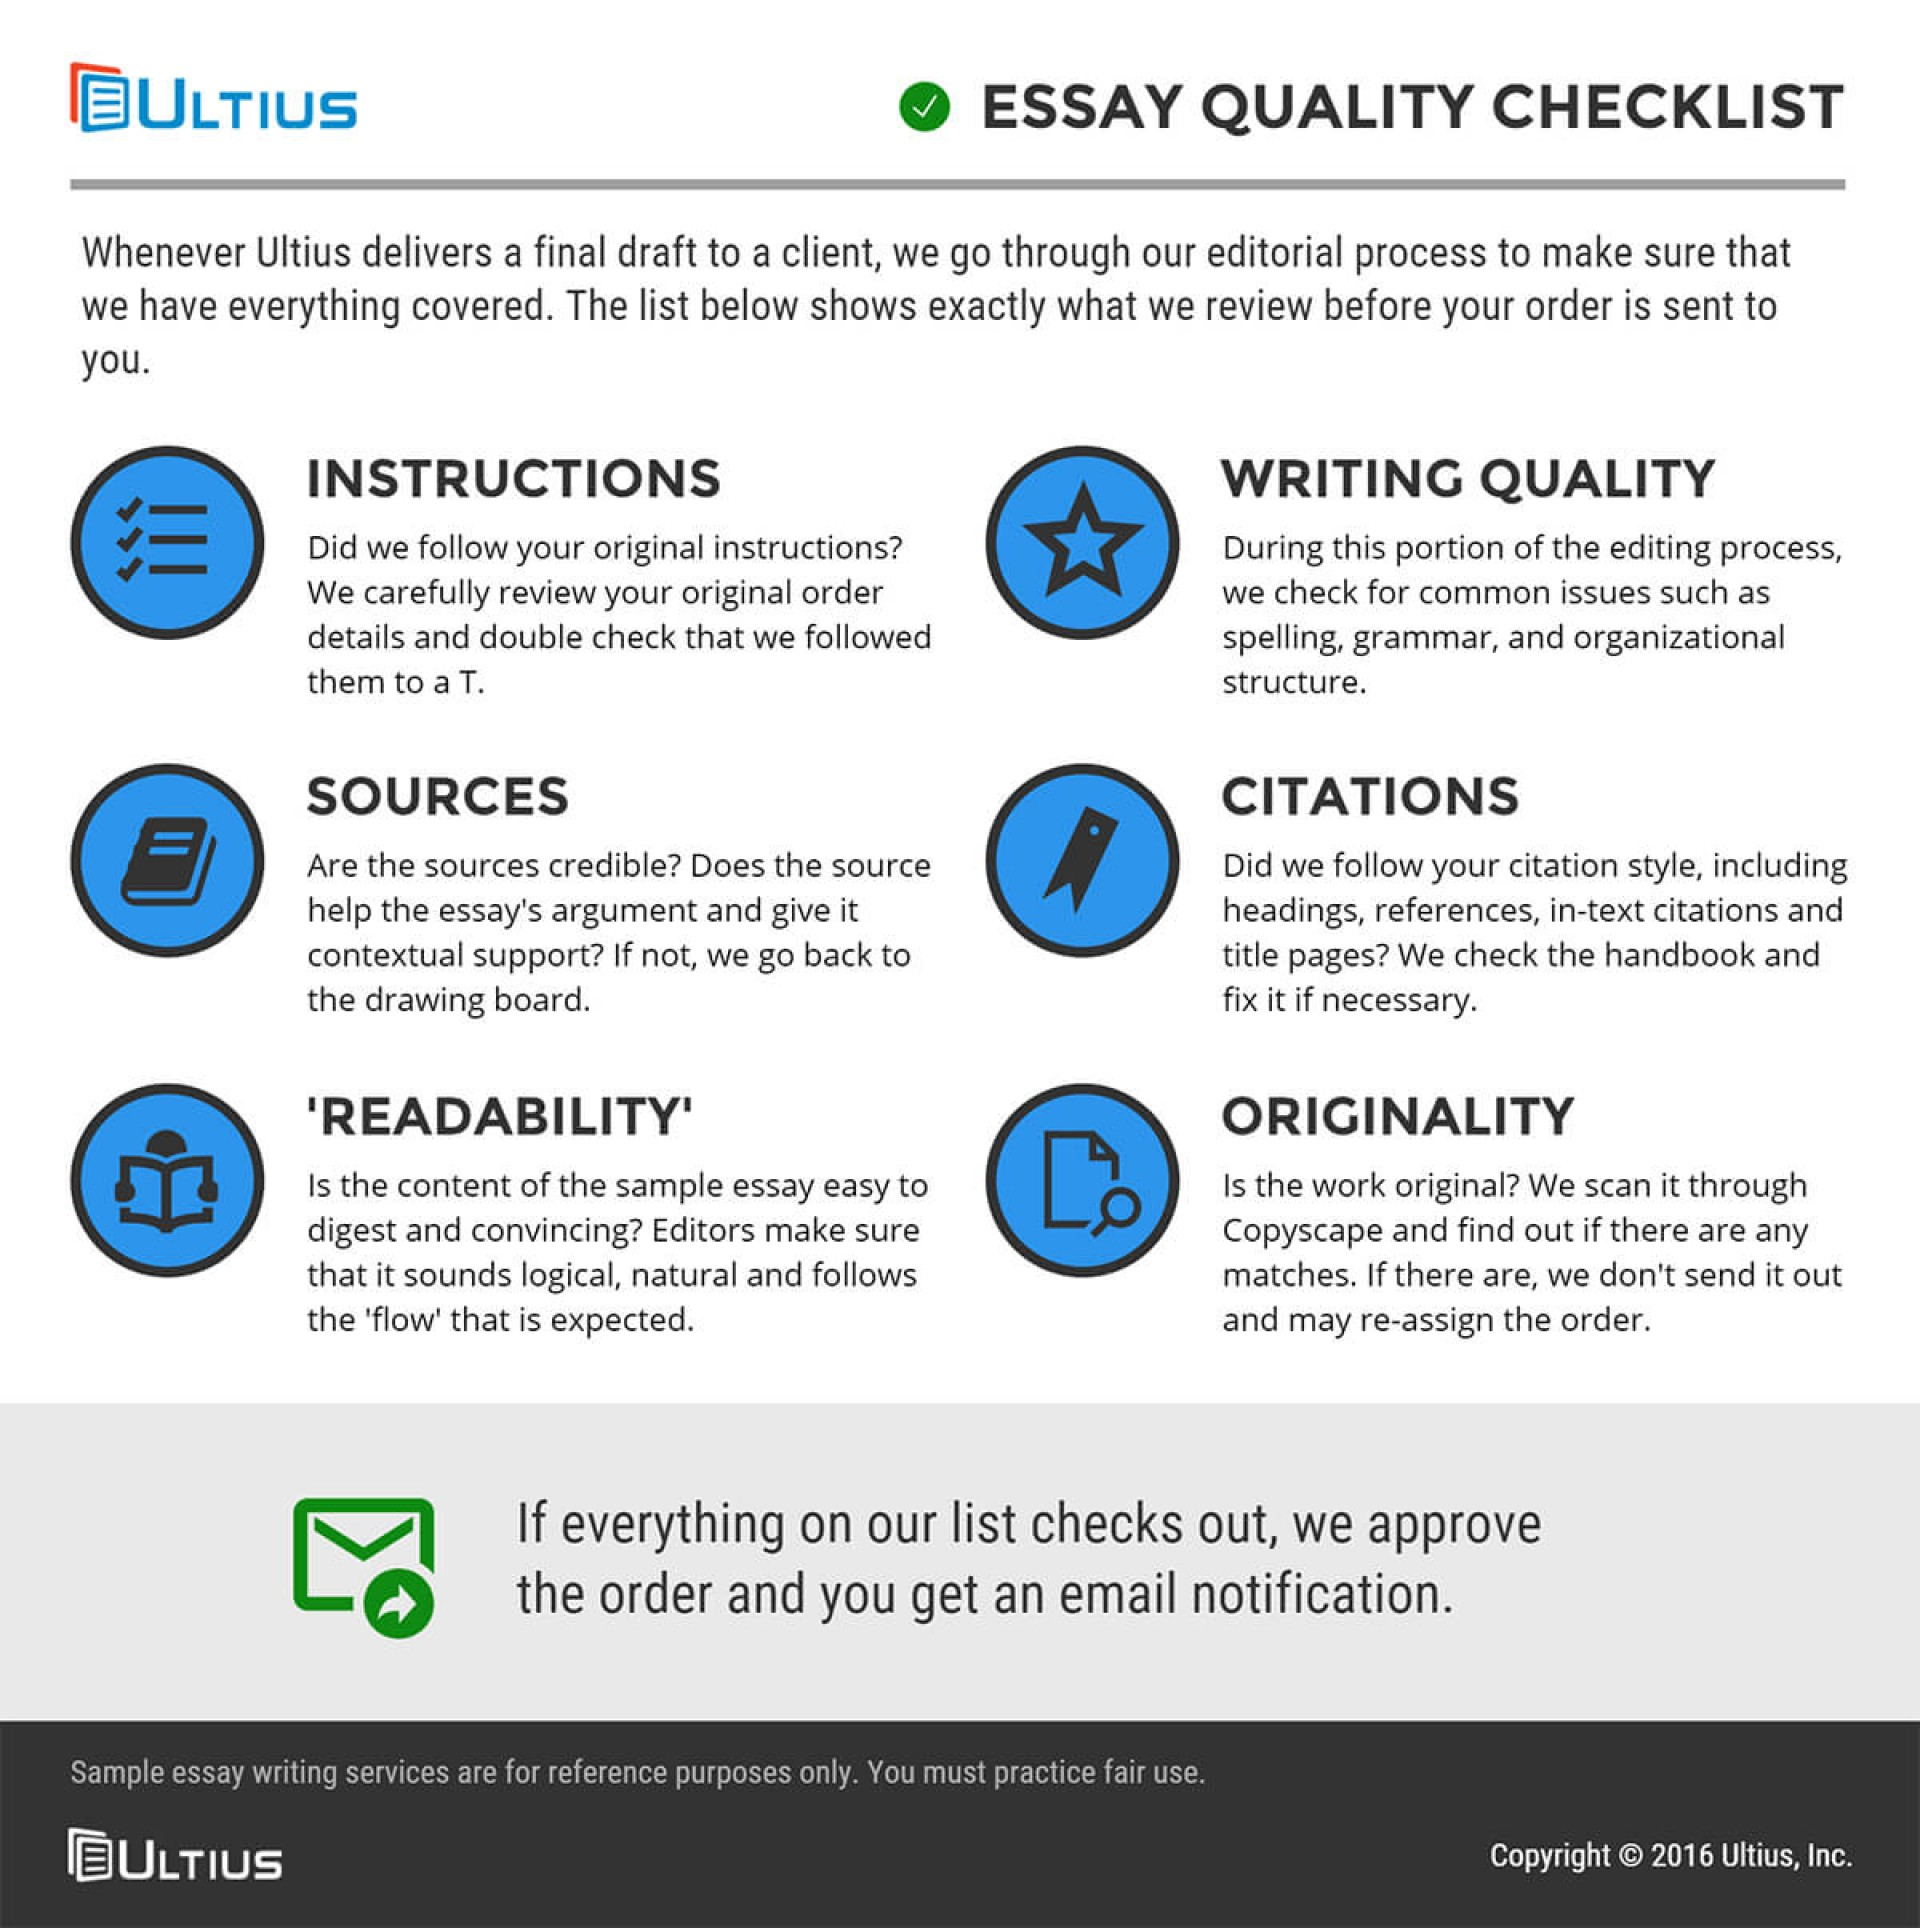 014 Essay Example Purchased Quality Checklist Dreaded Persuasive Rubric Word Document Graphic Organizer 8th Grade Outline High School 1920